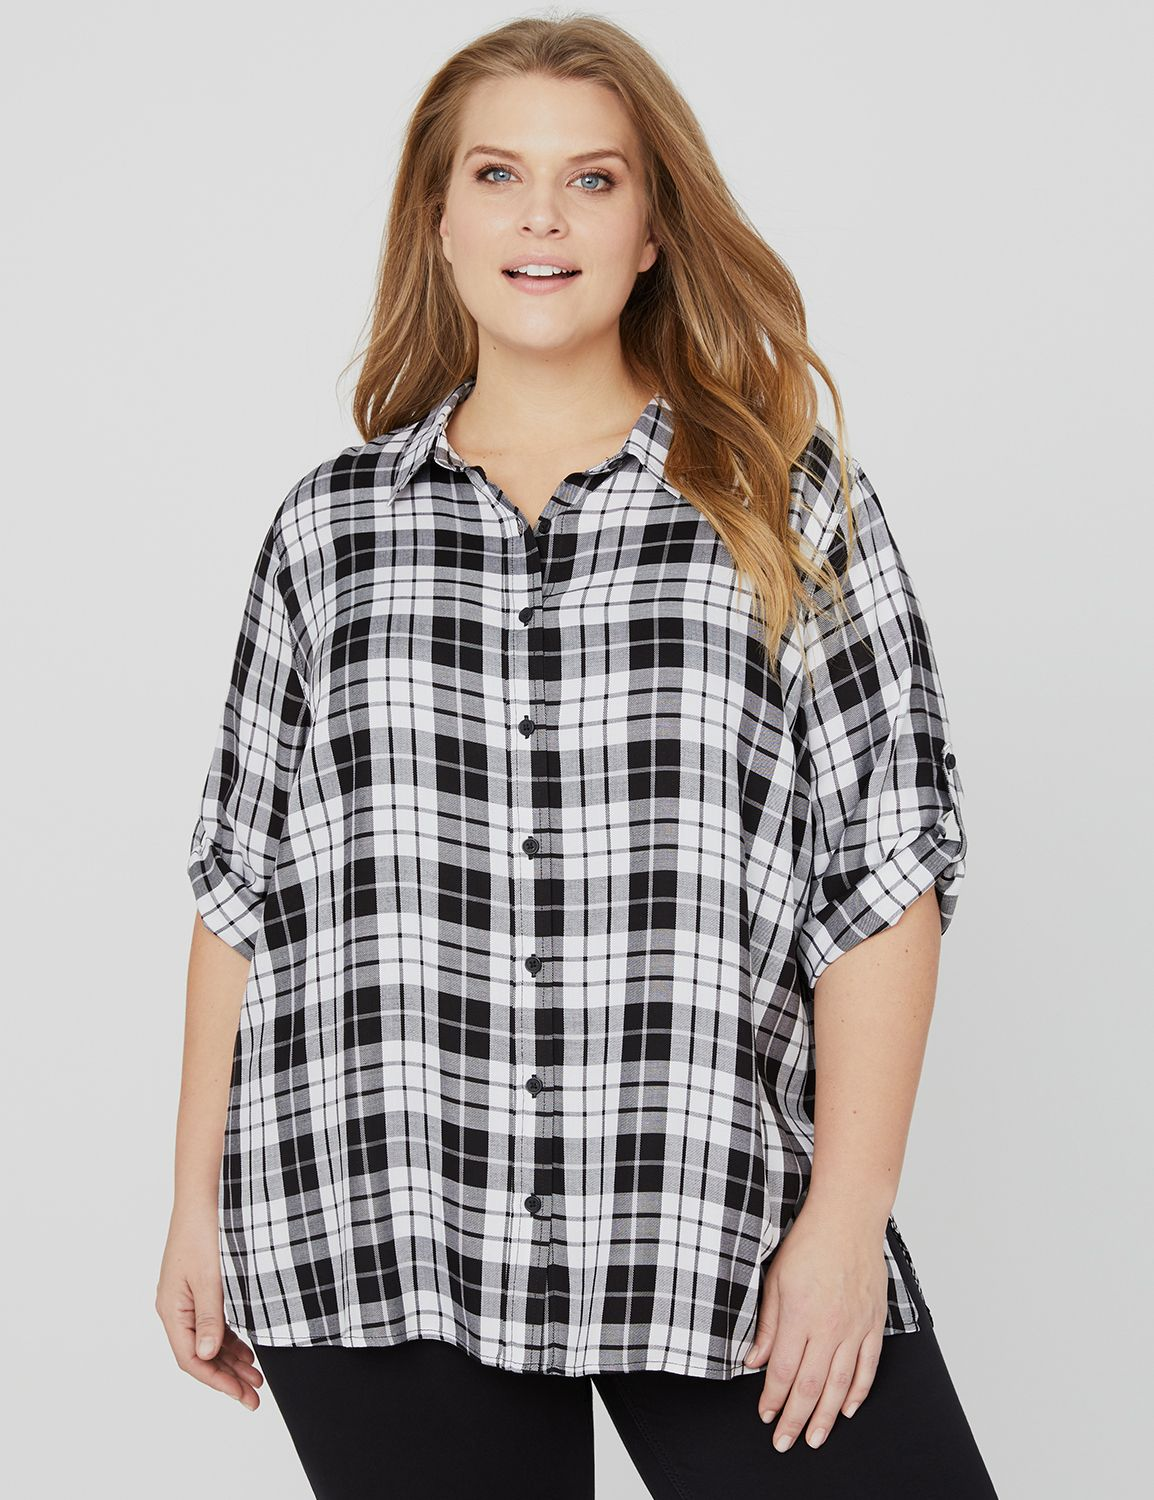 Hybrid Buttonfront Shirt 1093256 3/4 SLV PLAID BACK SHIRT MP-300101740